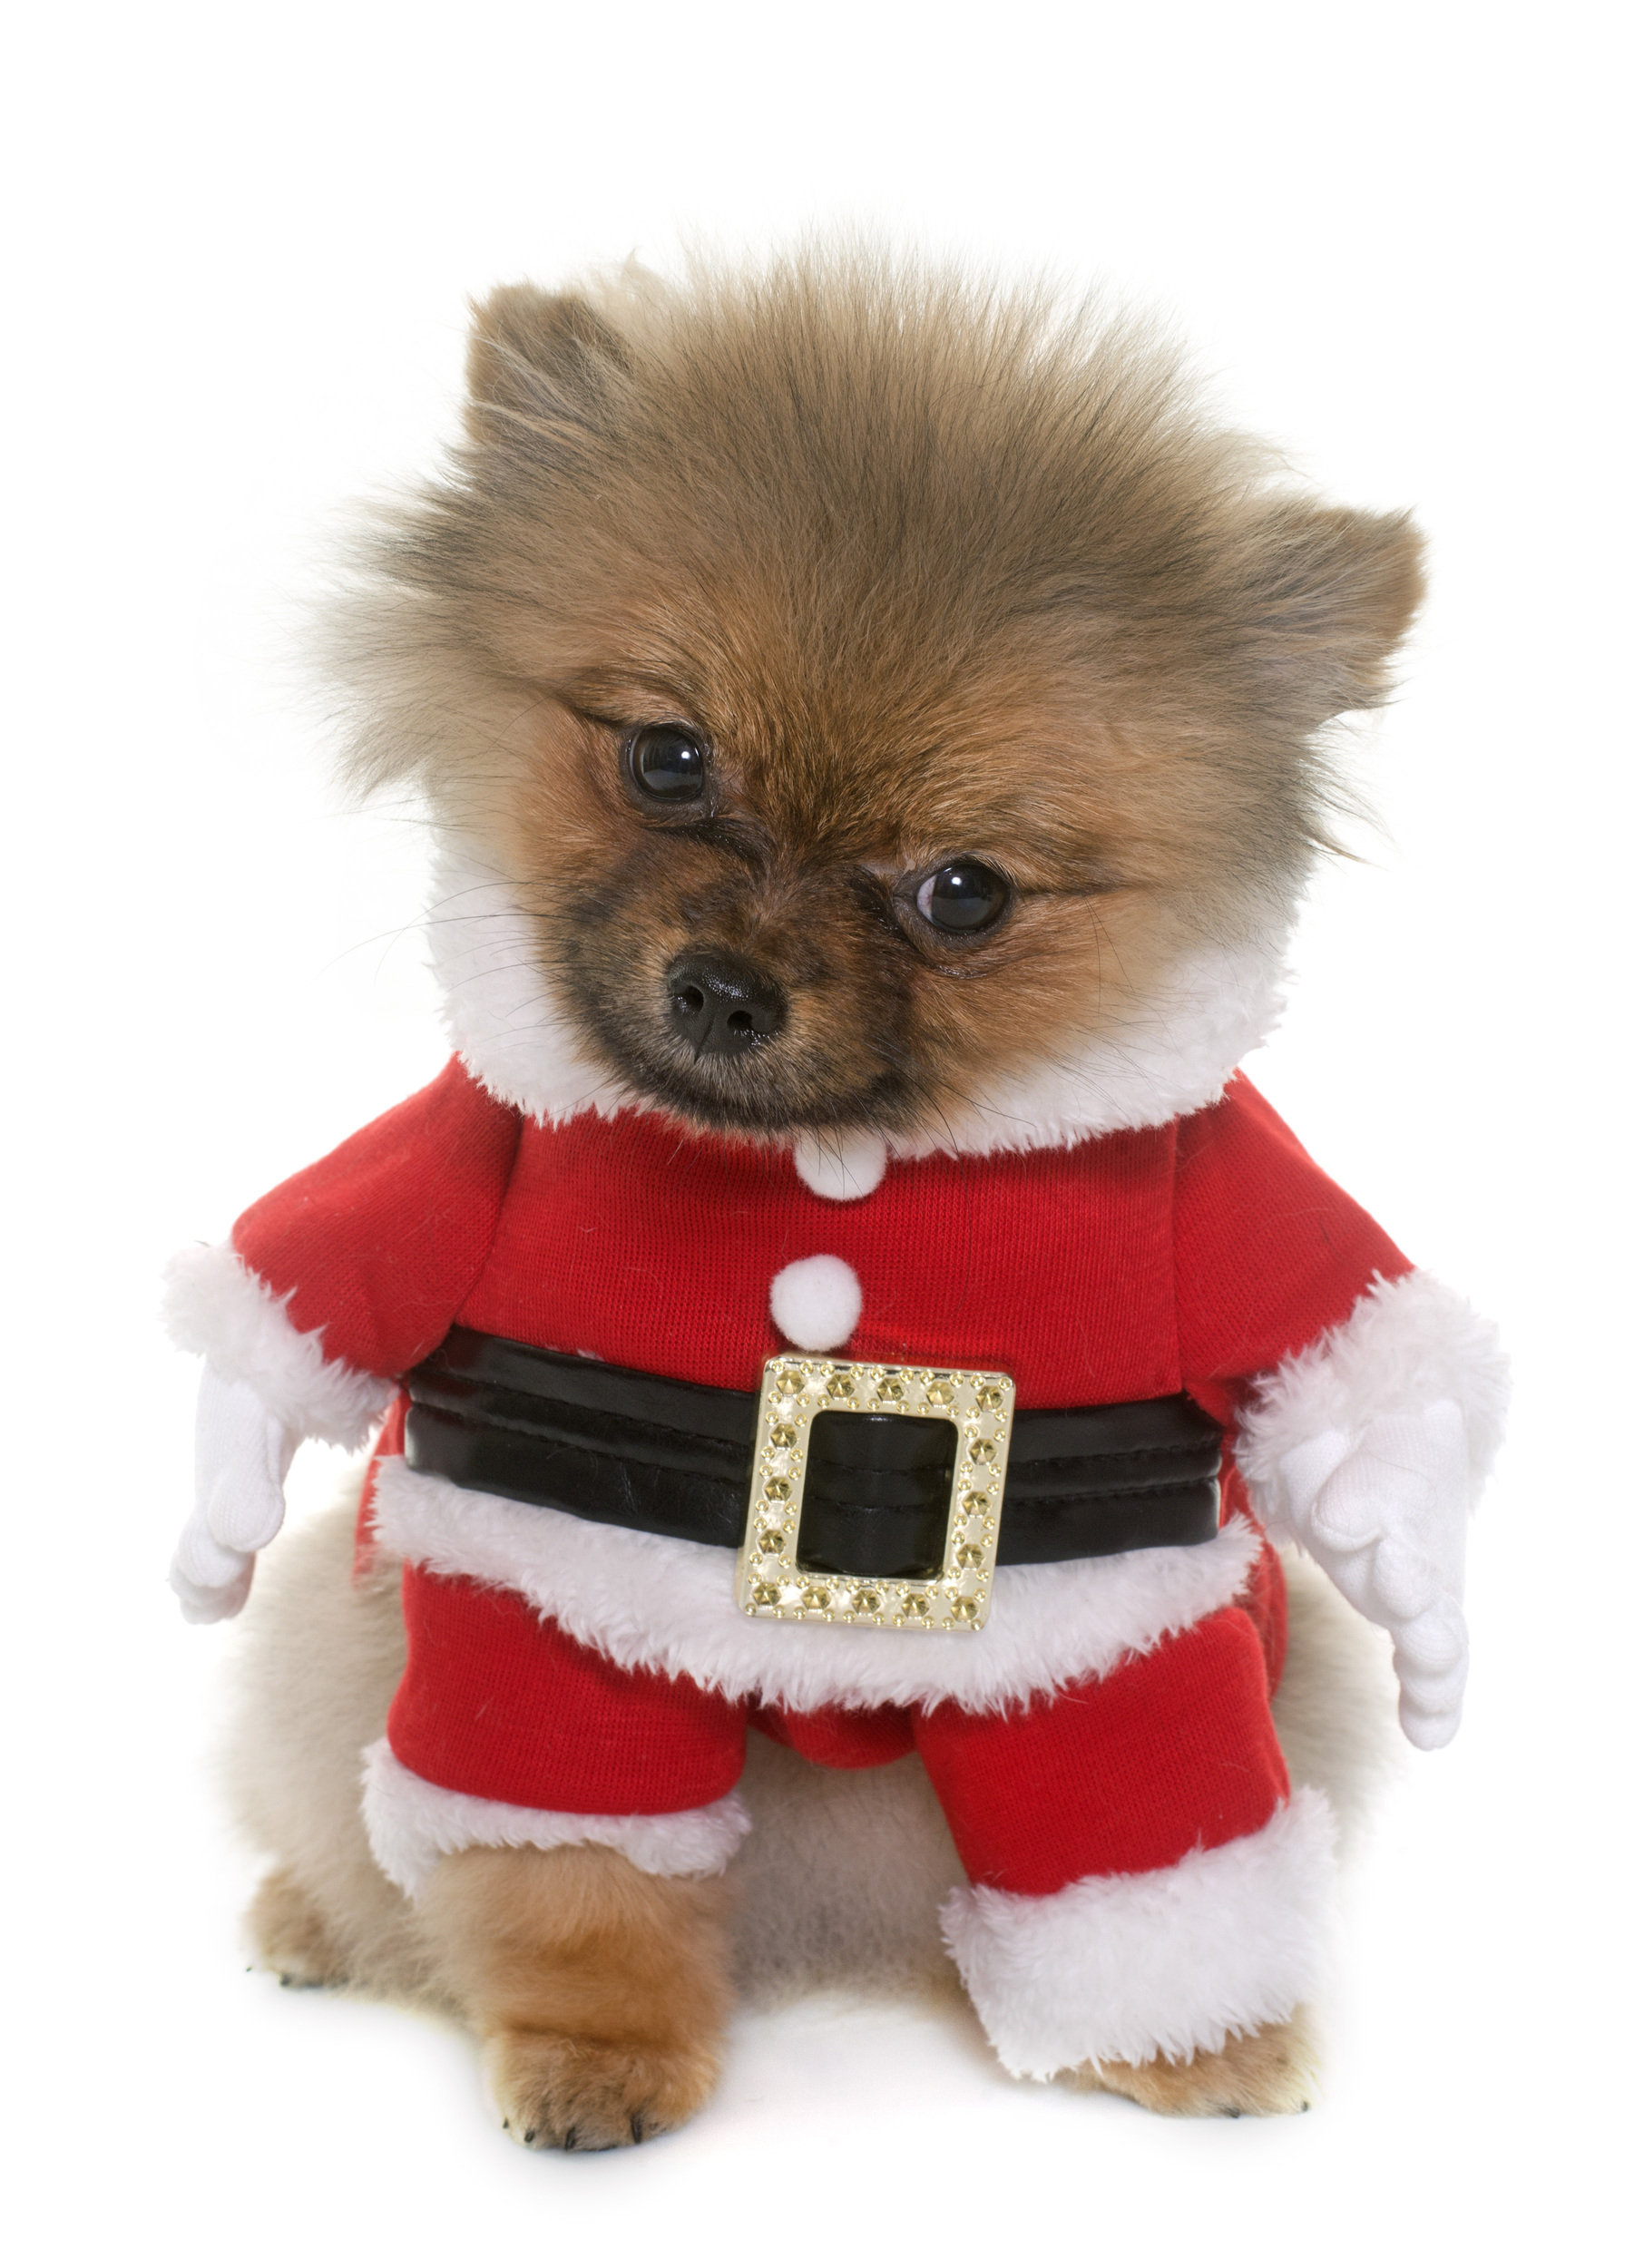 Dog in a Santa Suit